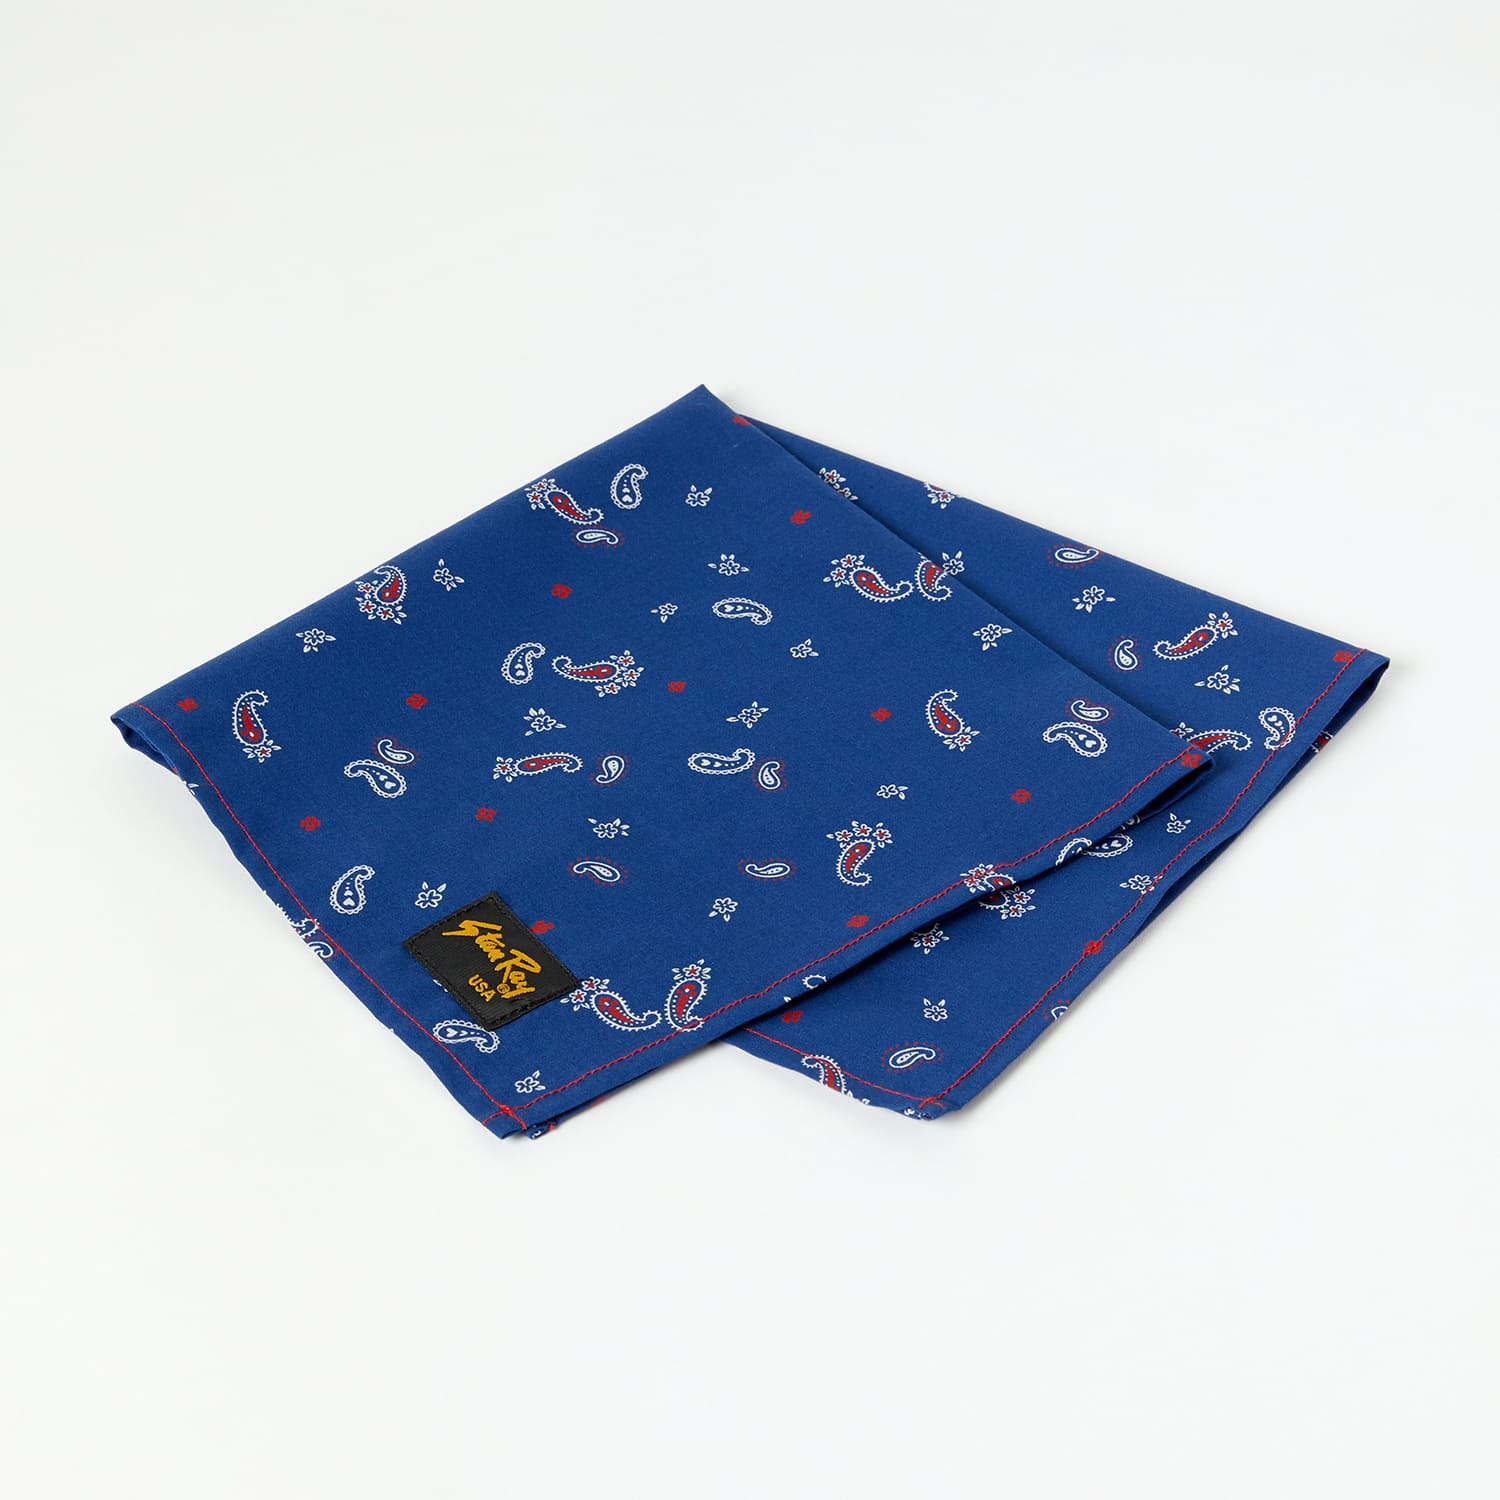 Stan Ray Bandana - Blue Bandana - Bandanas - Face Mask -